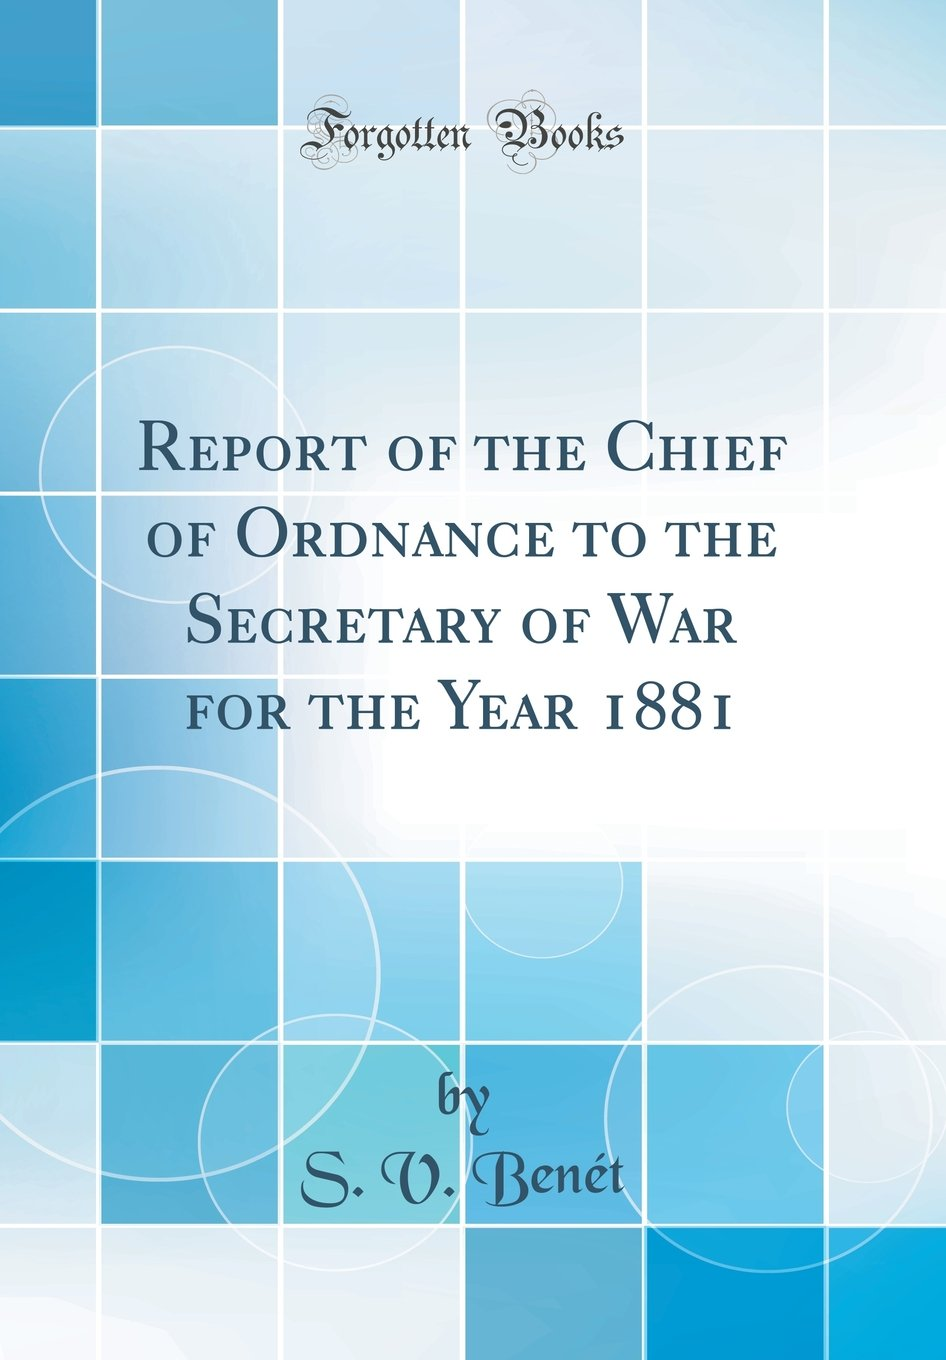 Read Online Report of the Chief of Ordnance to the Secretary of War for the Year 1881 (Classic Reprint) PDF